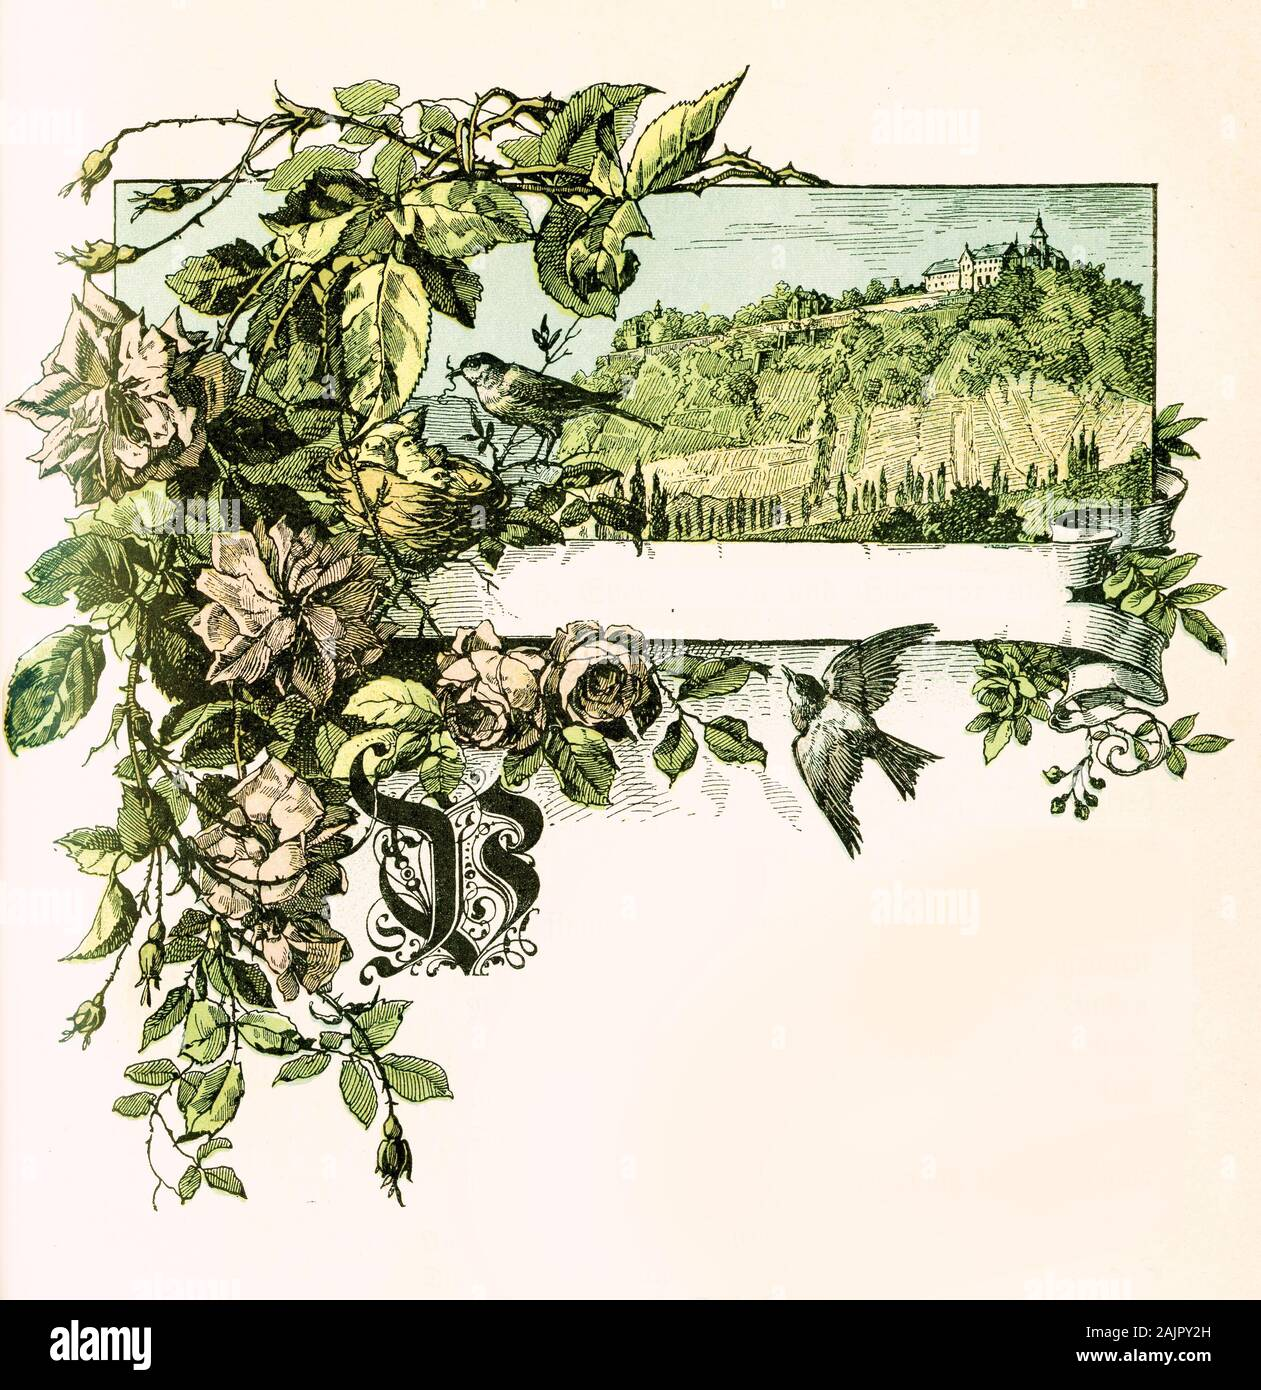 Beautiful front chapter decoration with spring scene: hill with cloister or catle on top, sparrows, rose strays, capital letter B in old German style and tag label with copyspace Stock Photo